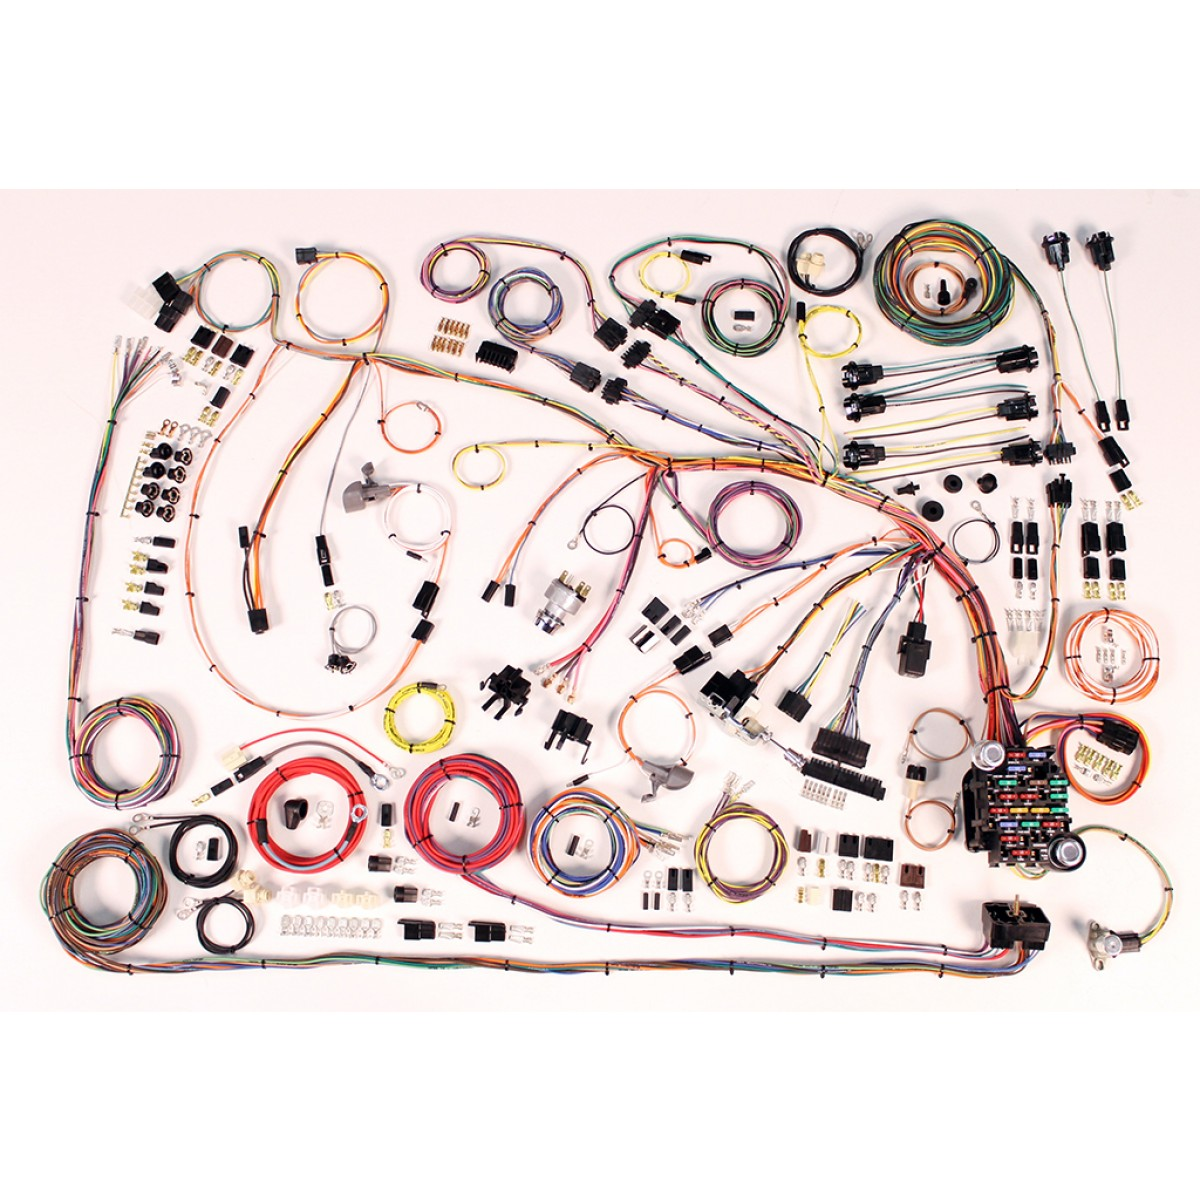 1966 Impala Complete Wiring Kit Diagram Fuse Box 1968 Wire Harness Rh Code510 Com 2007 Chevy Dash